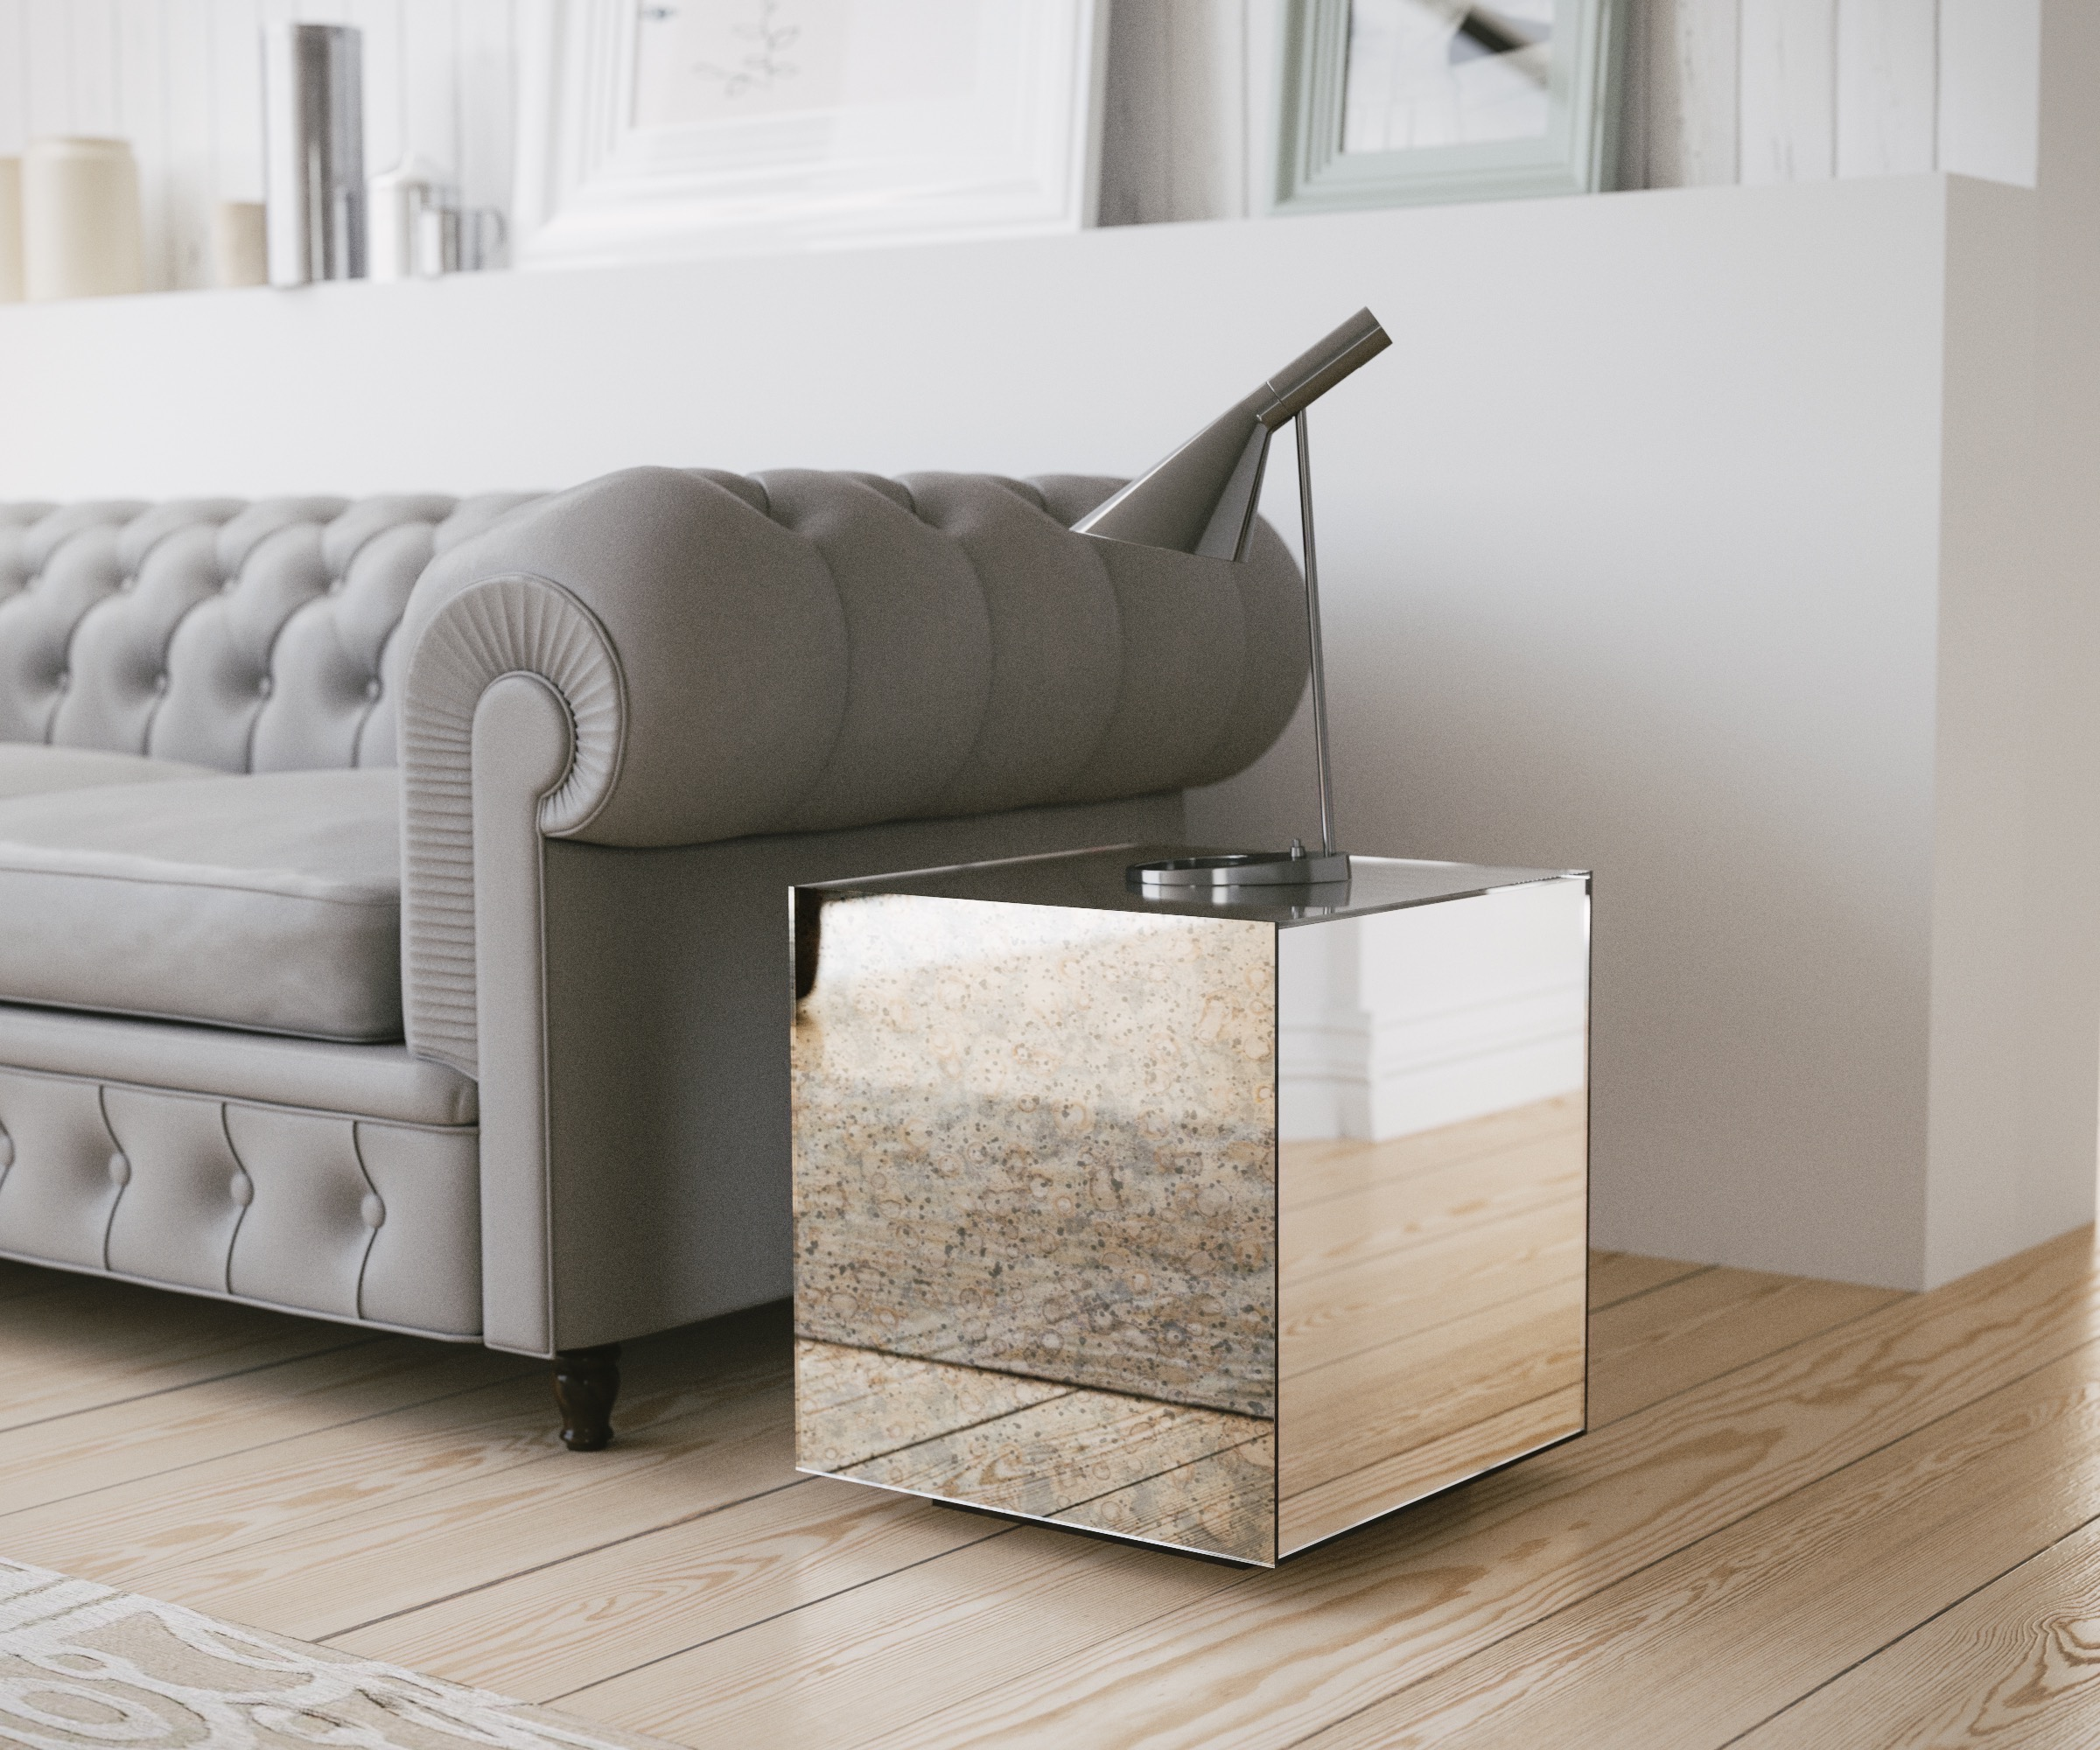 Side view of accent table